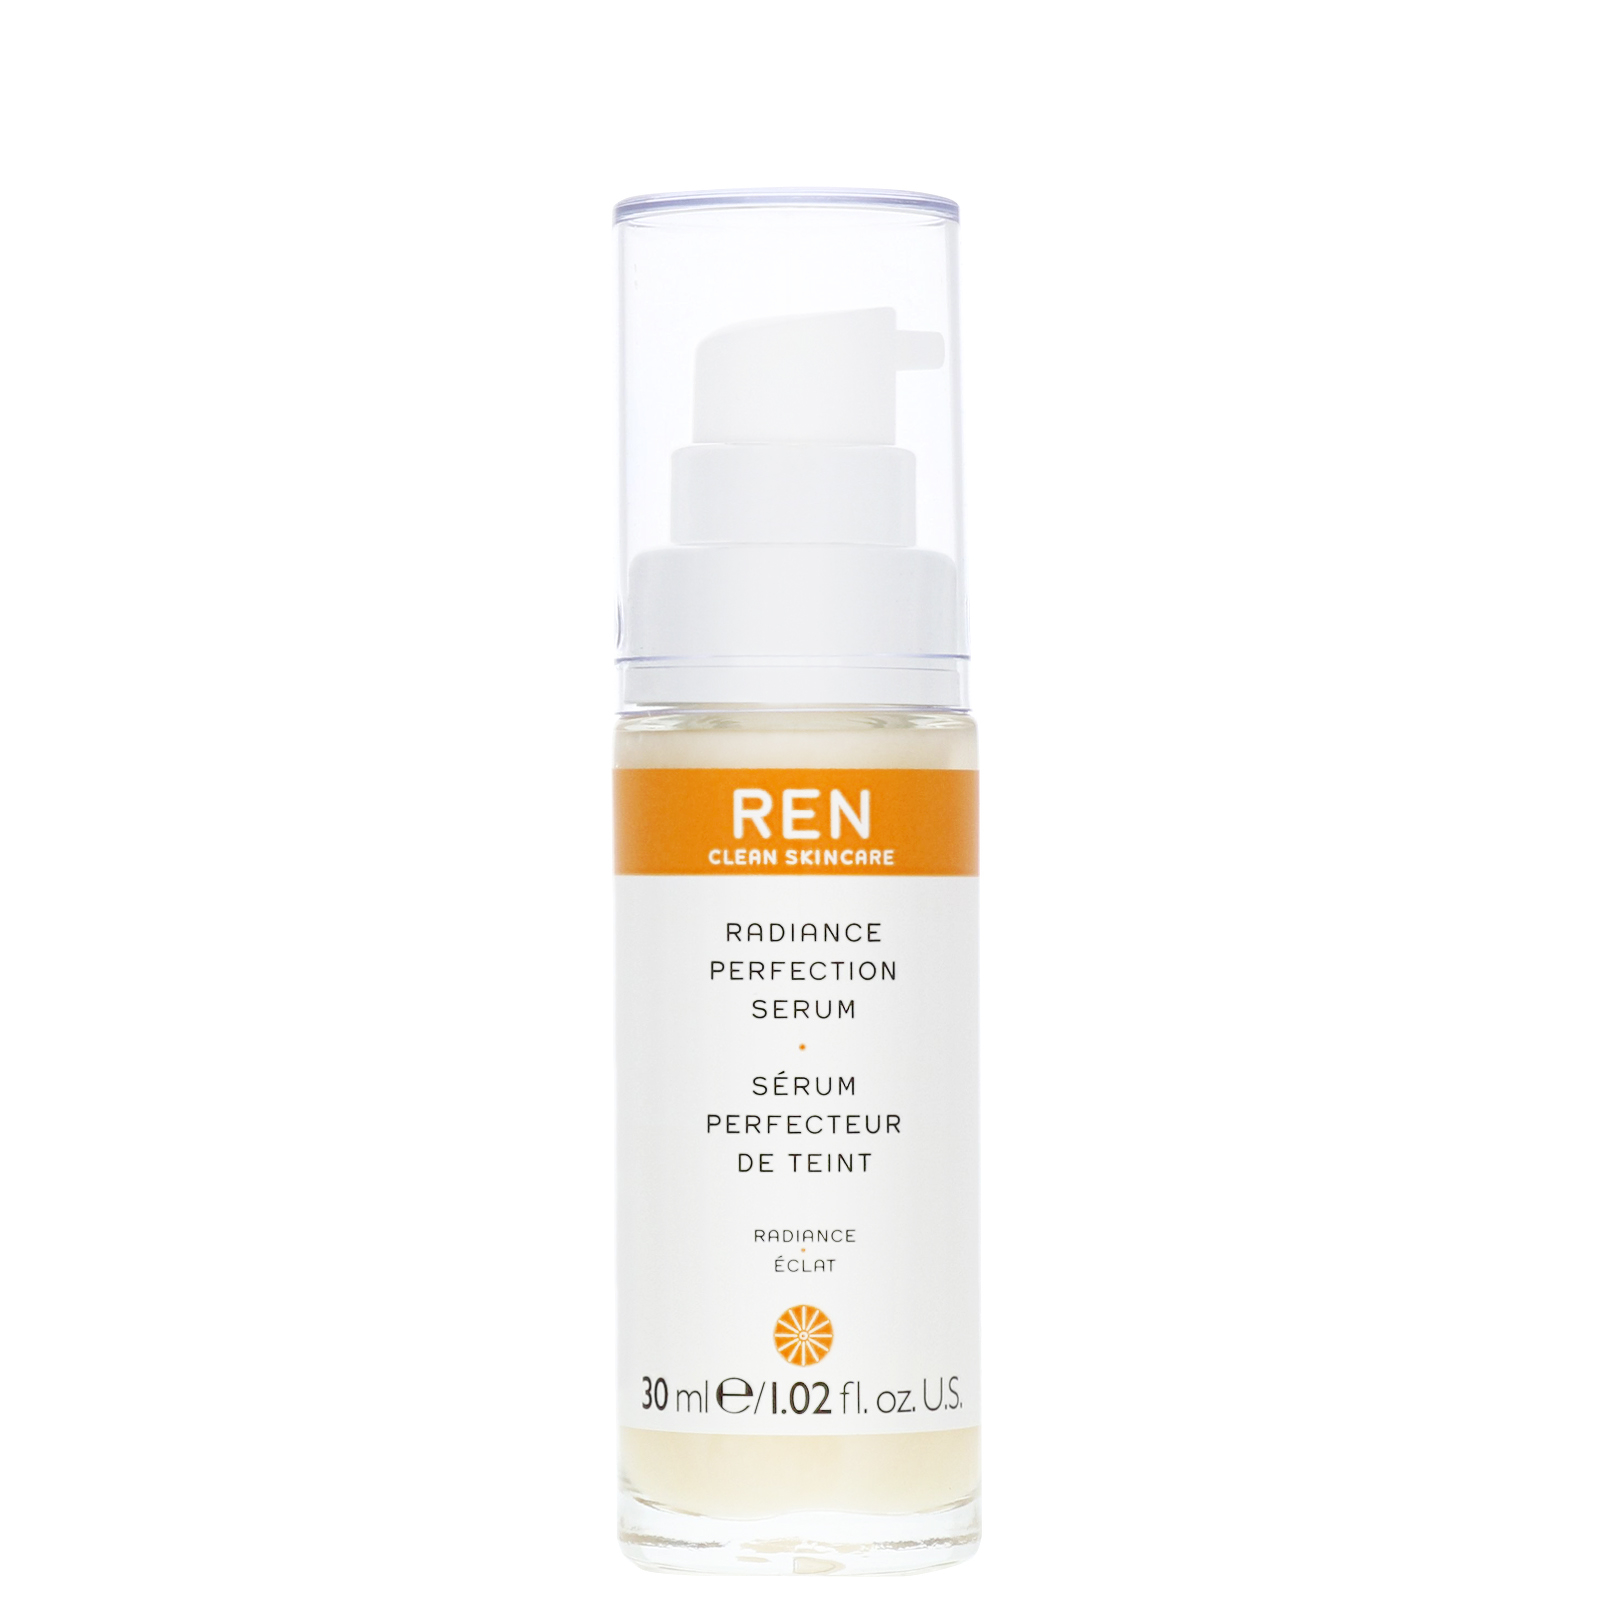 REN Clean Skincare Face Radiance Perfection Serum 30ml / 1.02 fl.oz.